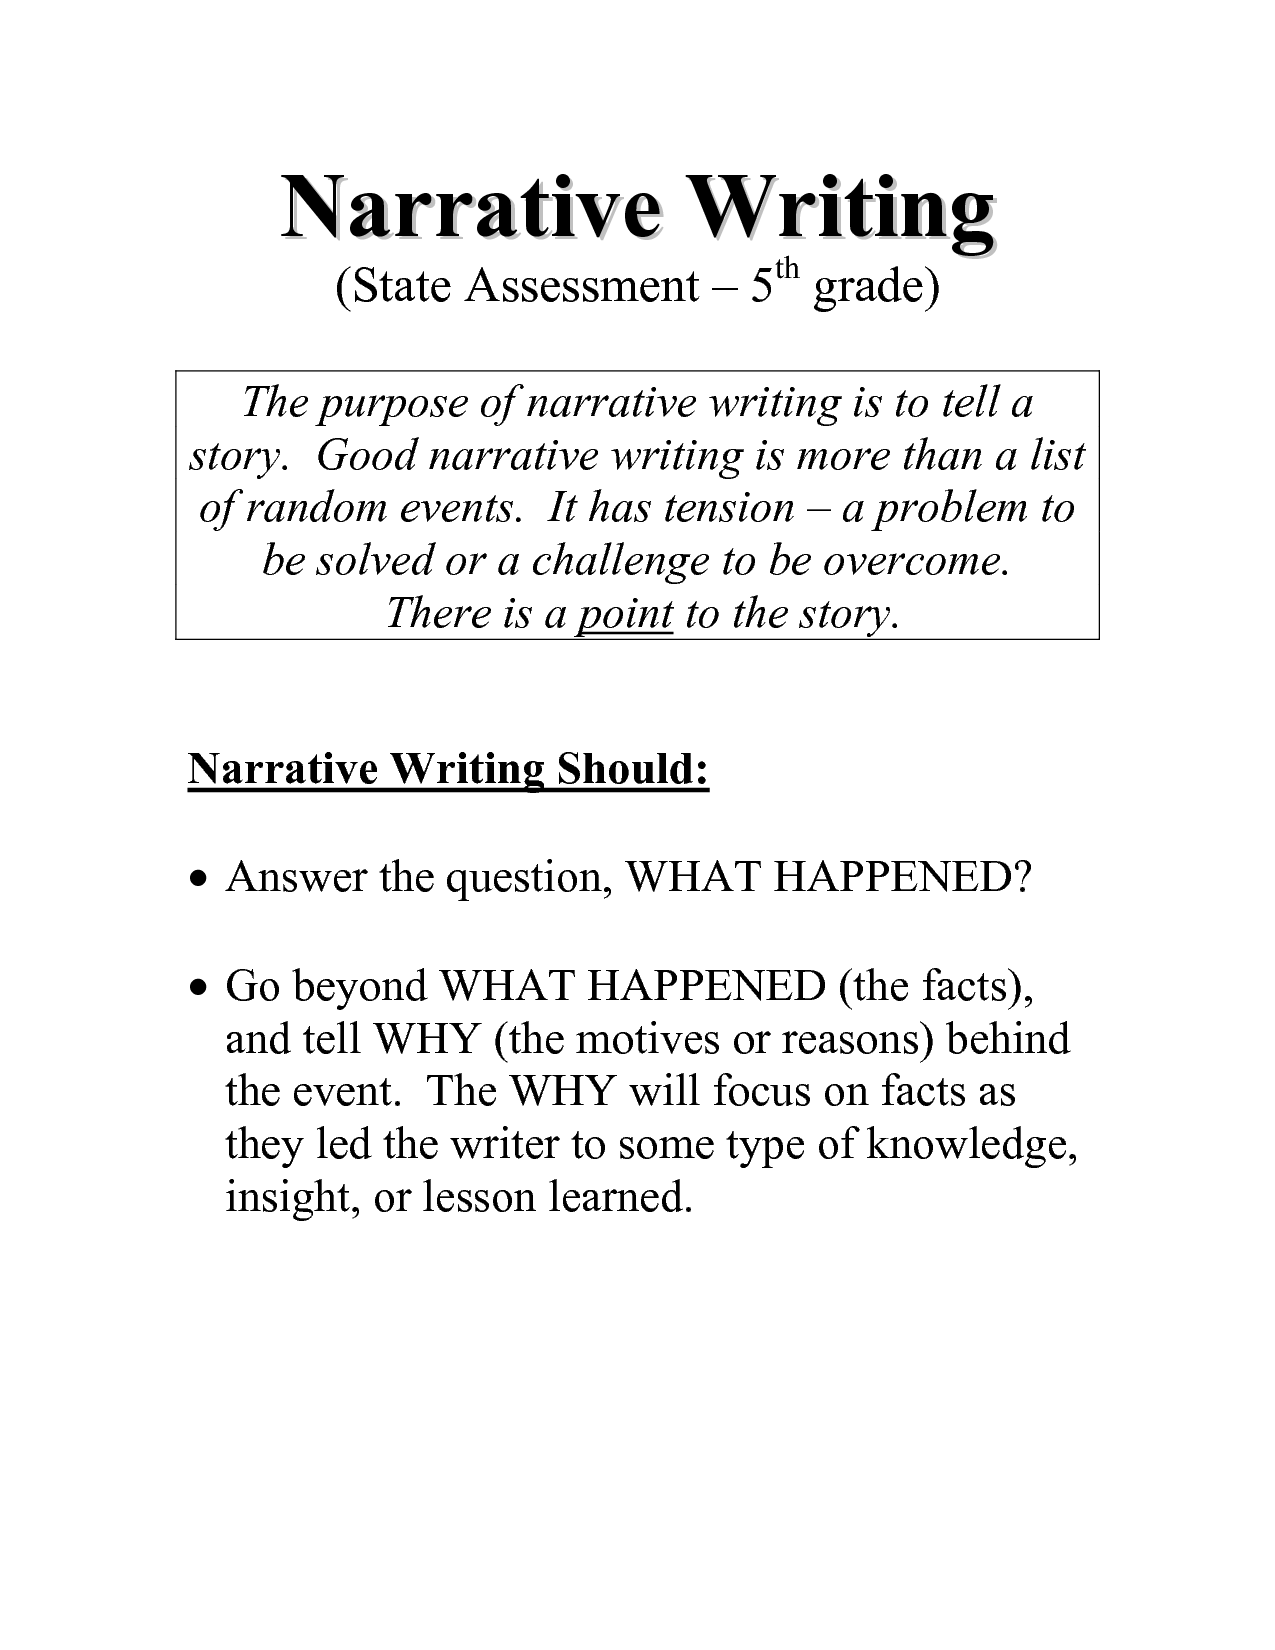 essays narrative writing Homework help suzy kline writing narrative essays dissertation sur la conscience et la conscience what to write a narrative essay about.